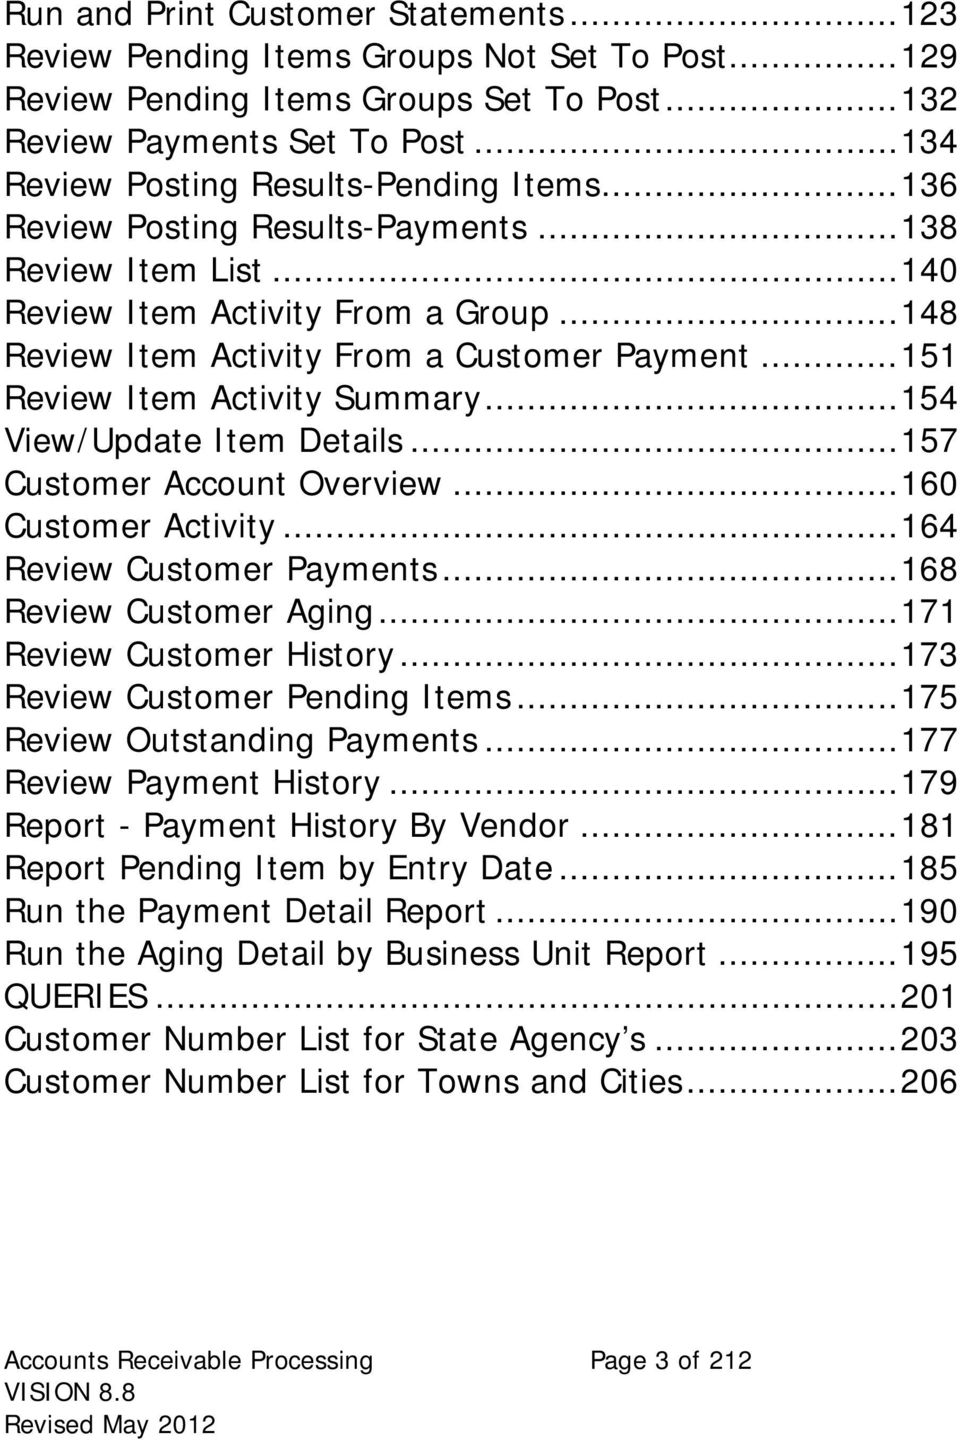 .. 151 Review Item Activity Summary... 154 View/Update Item Details... 157 Customer Account Overview... 160 Customer Activity... 164 Review Customer Payments... 168 Review Customer Aging.